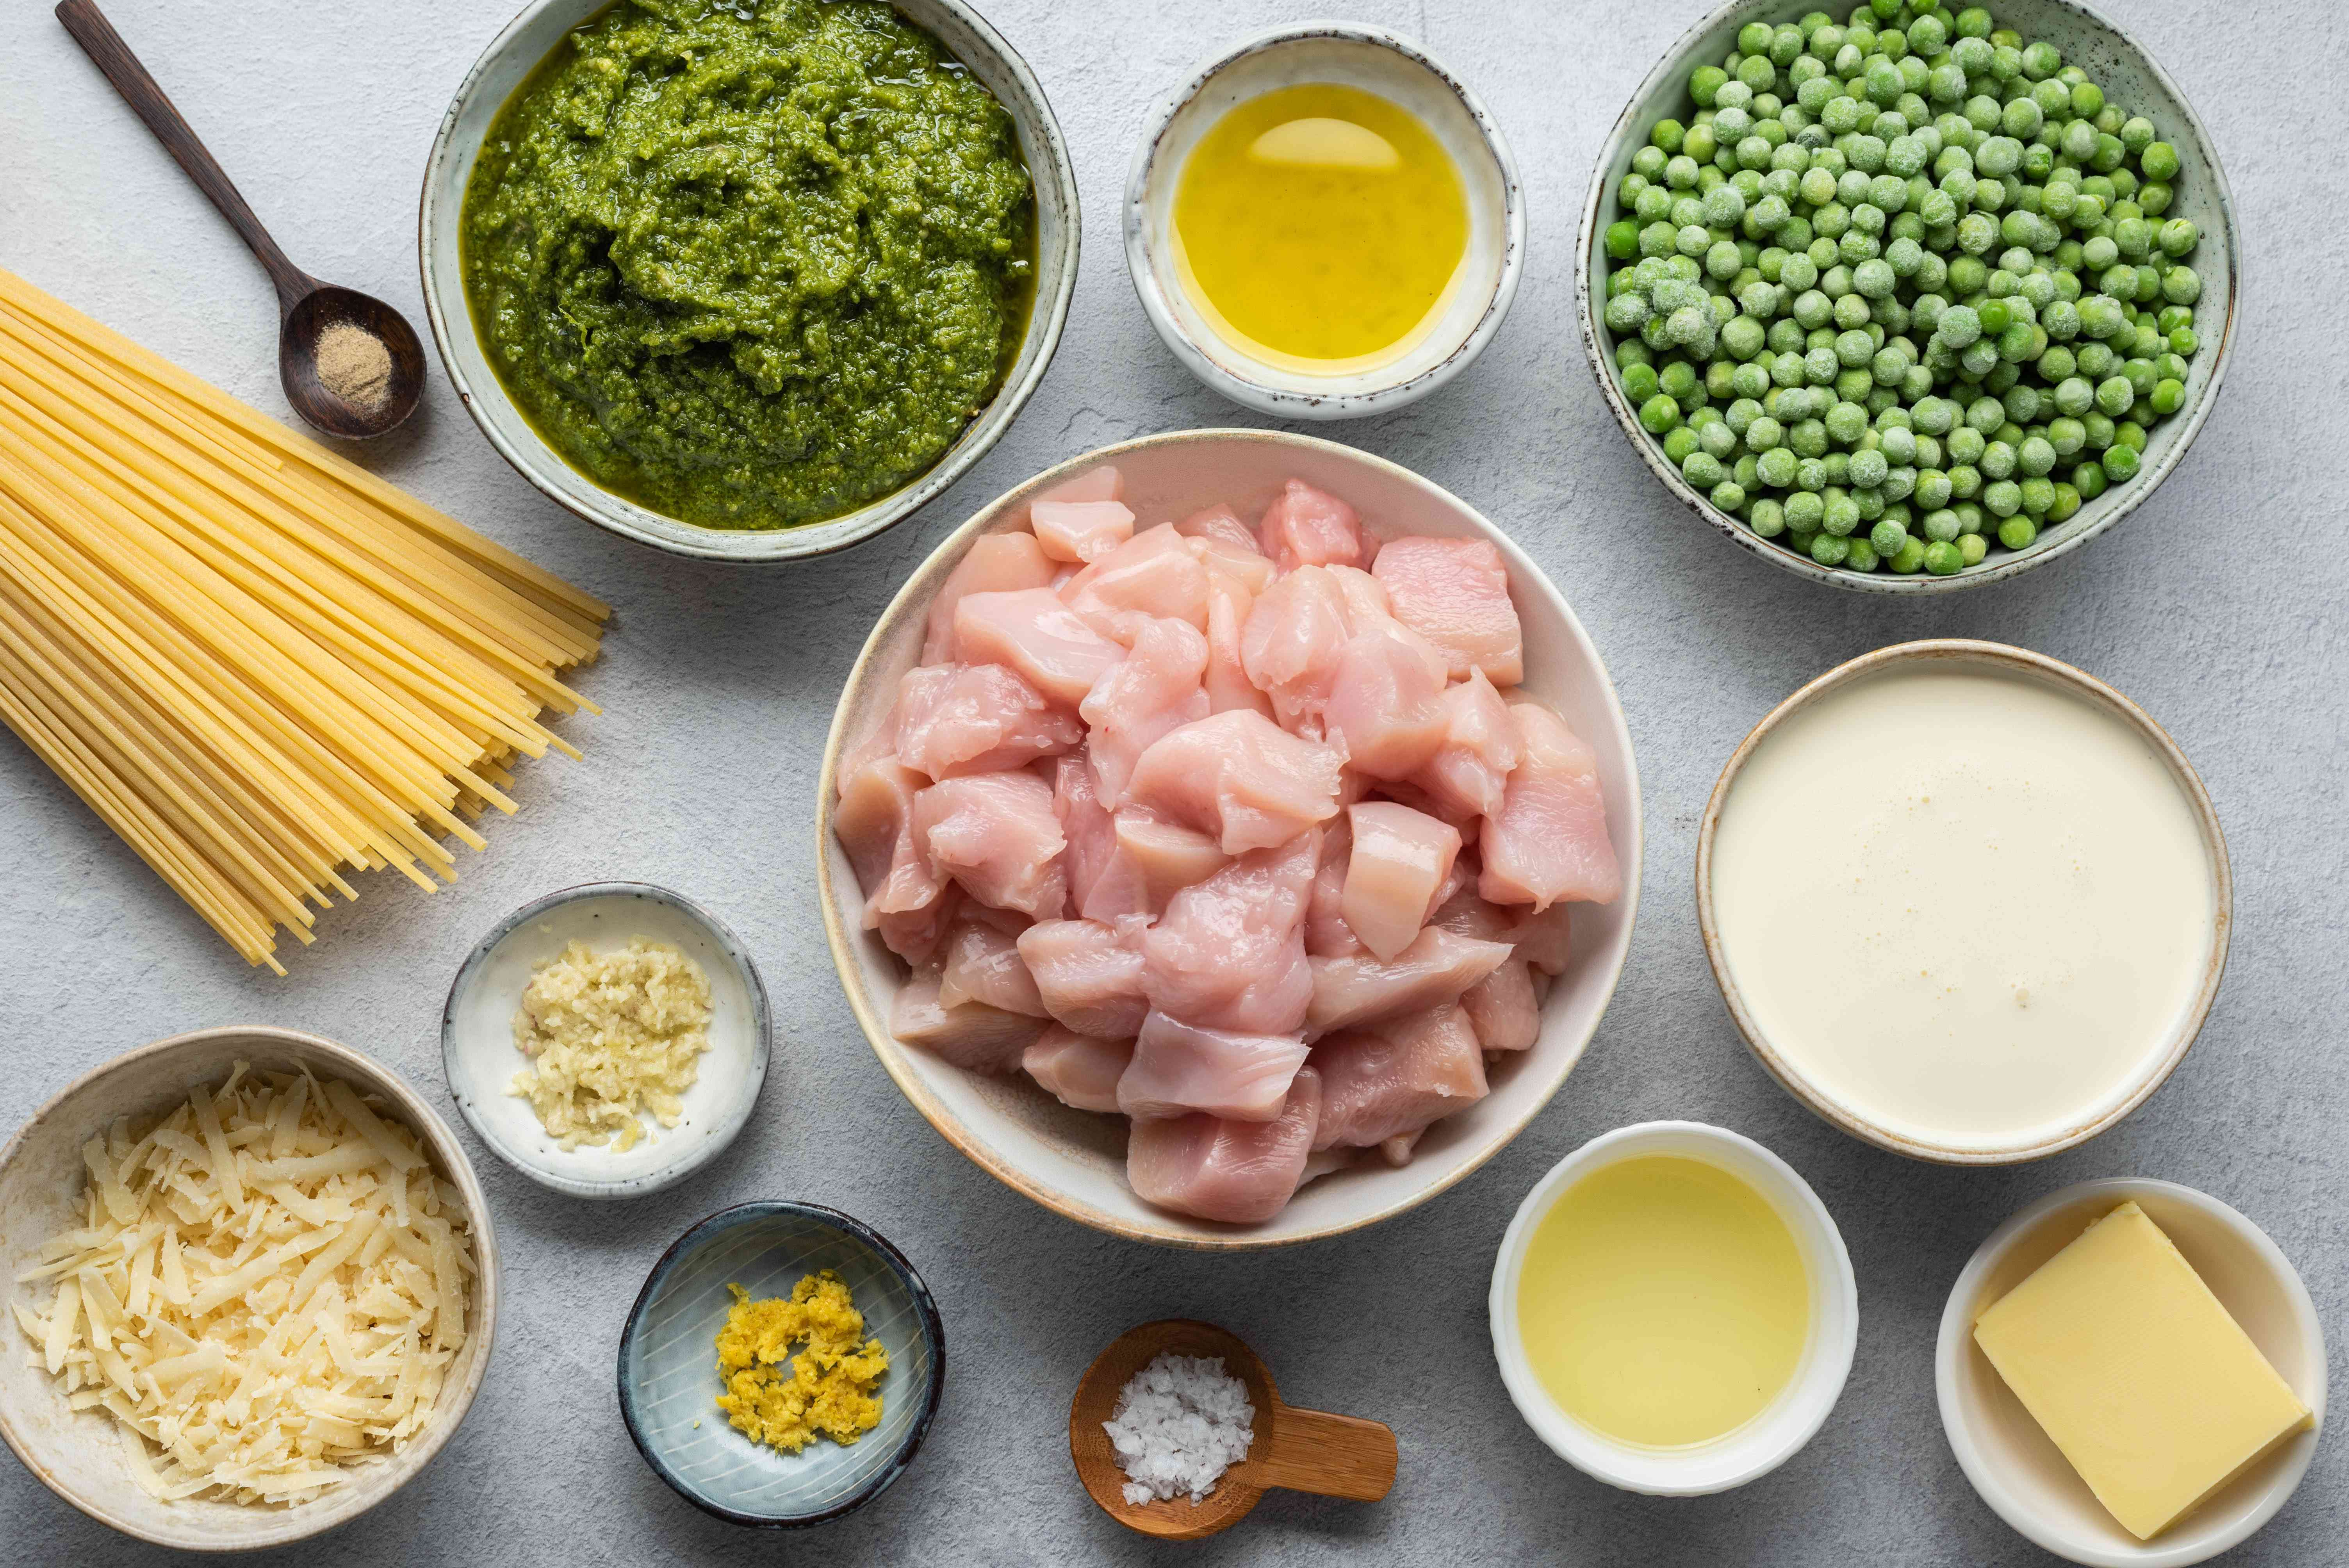 Chicken and Pasta With Lemon Pesto ingredients